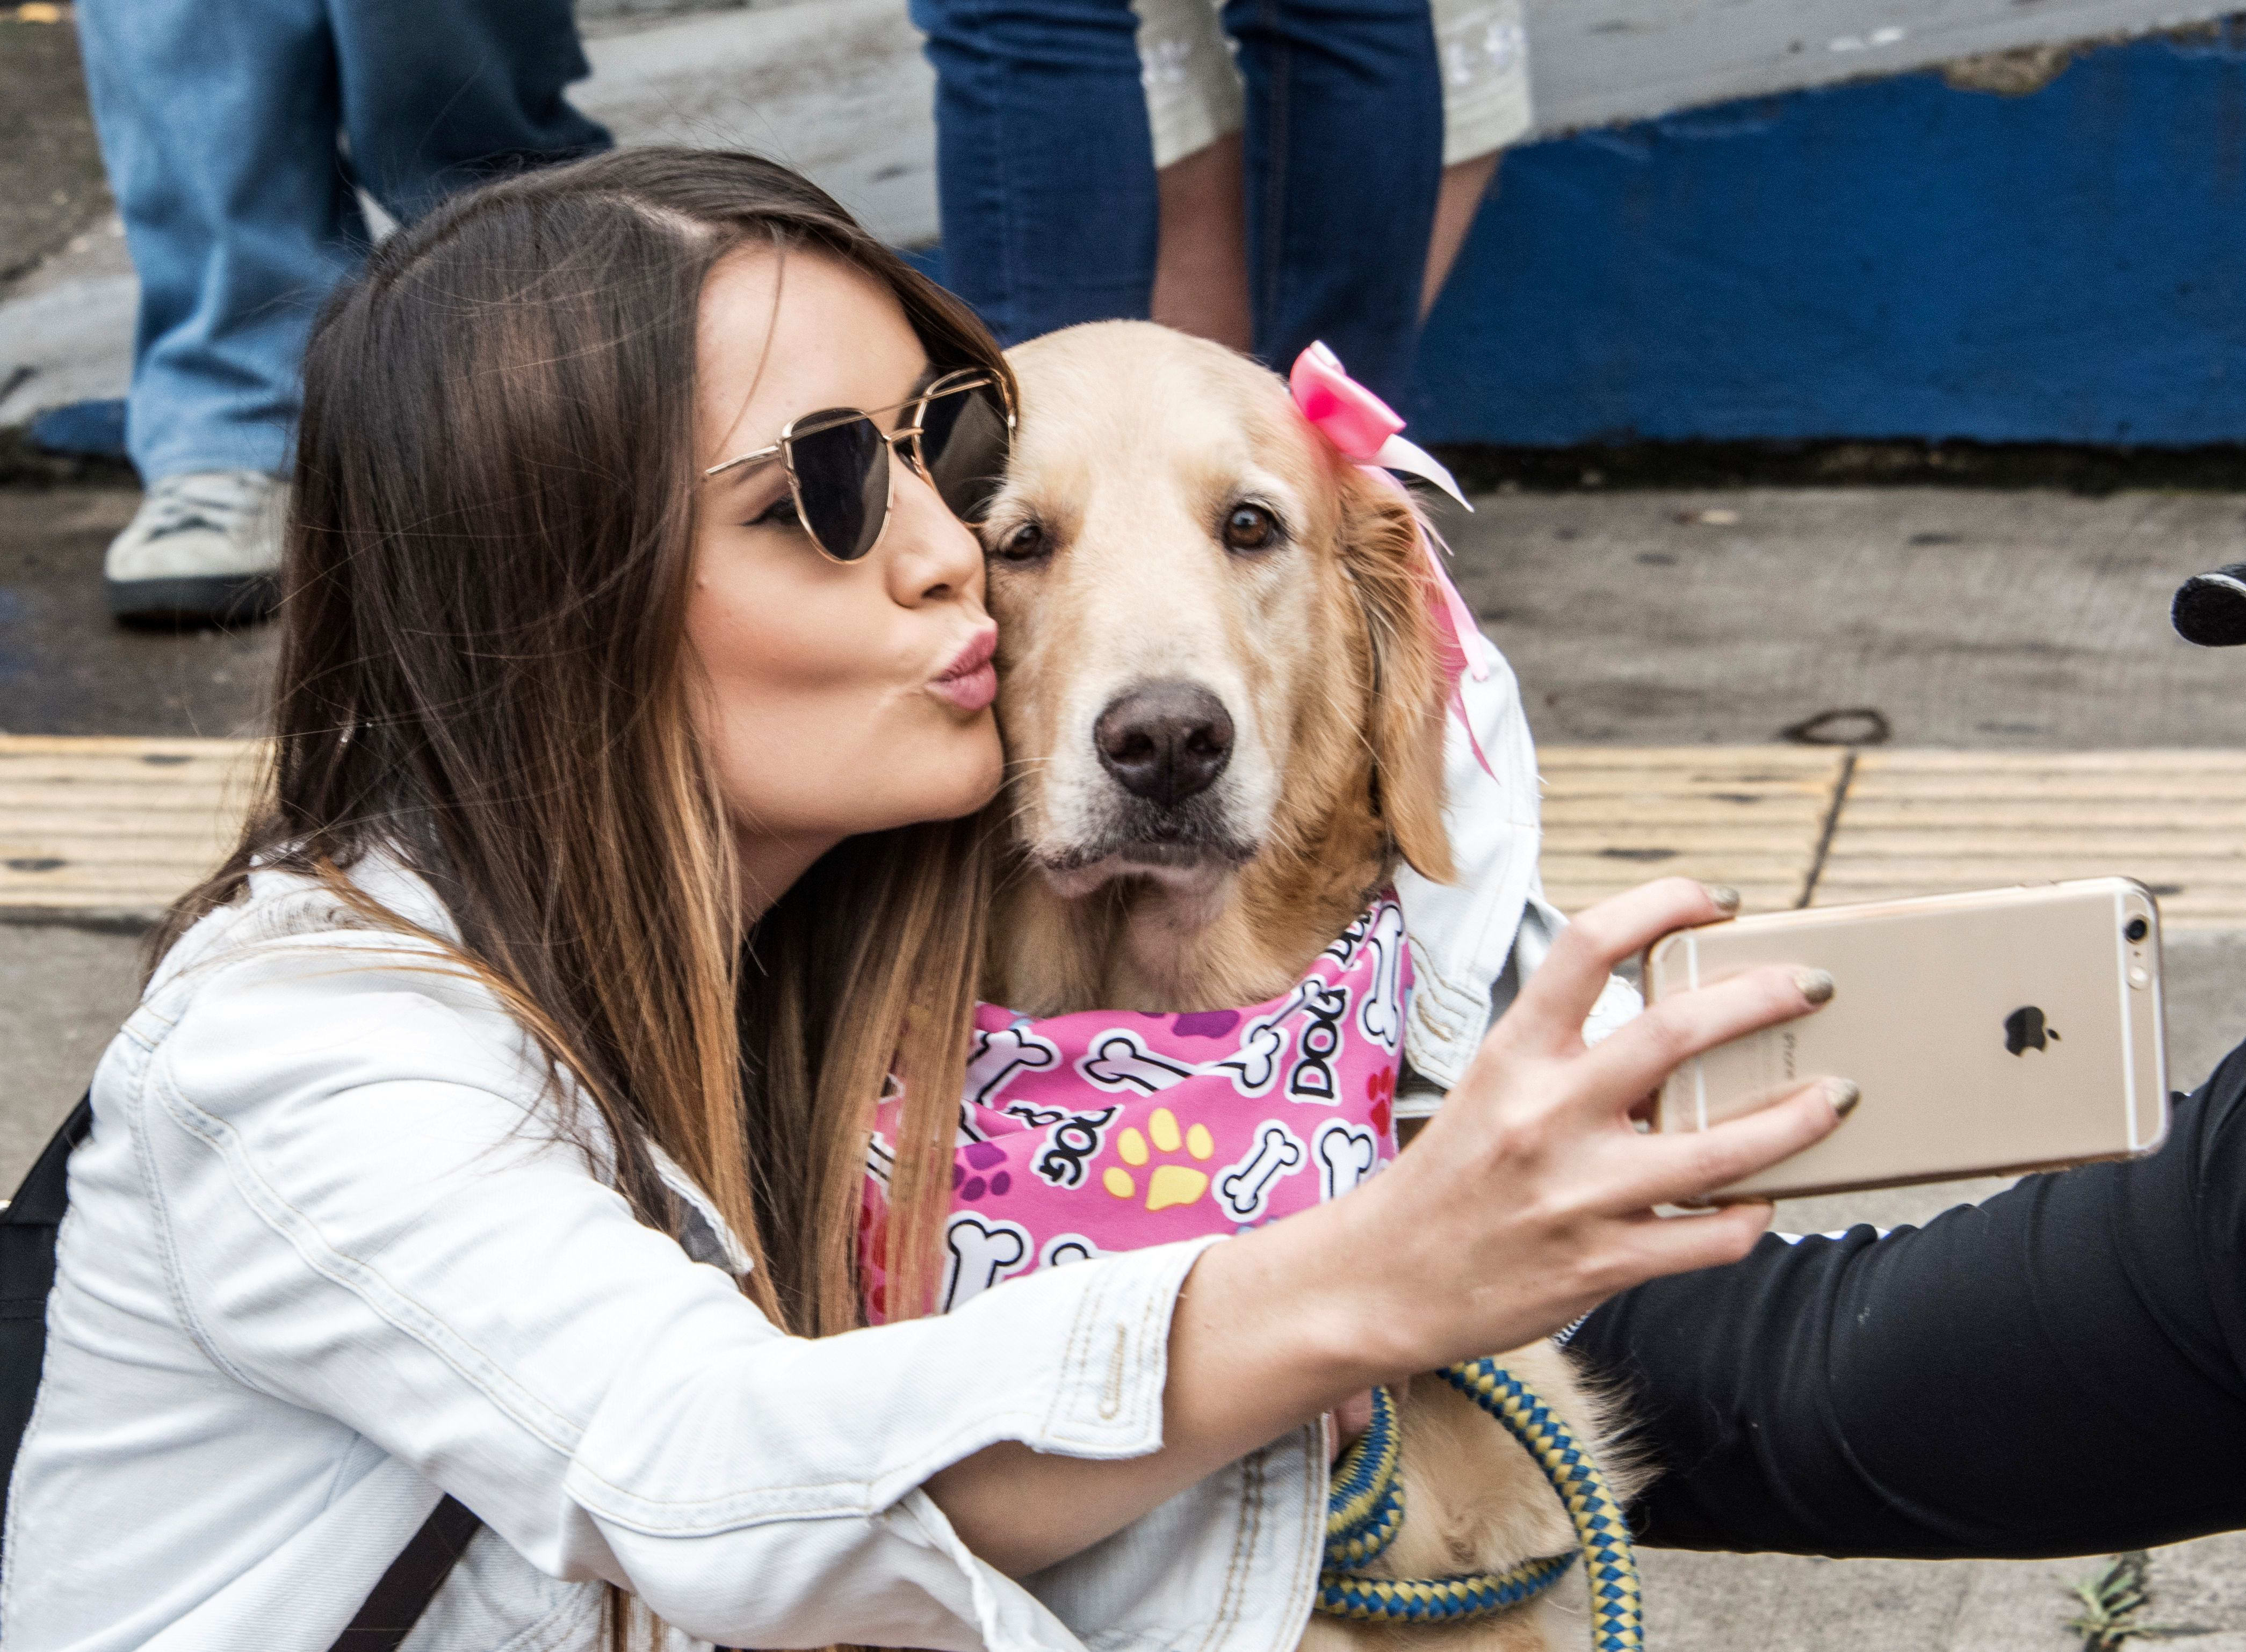 Synchrony Financial bets on Americans' growing pet obsessions